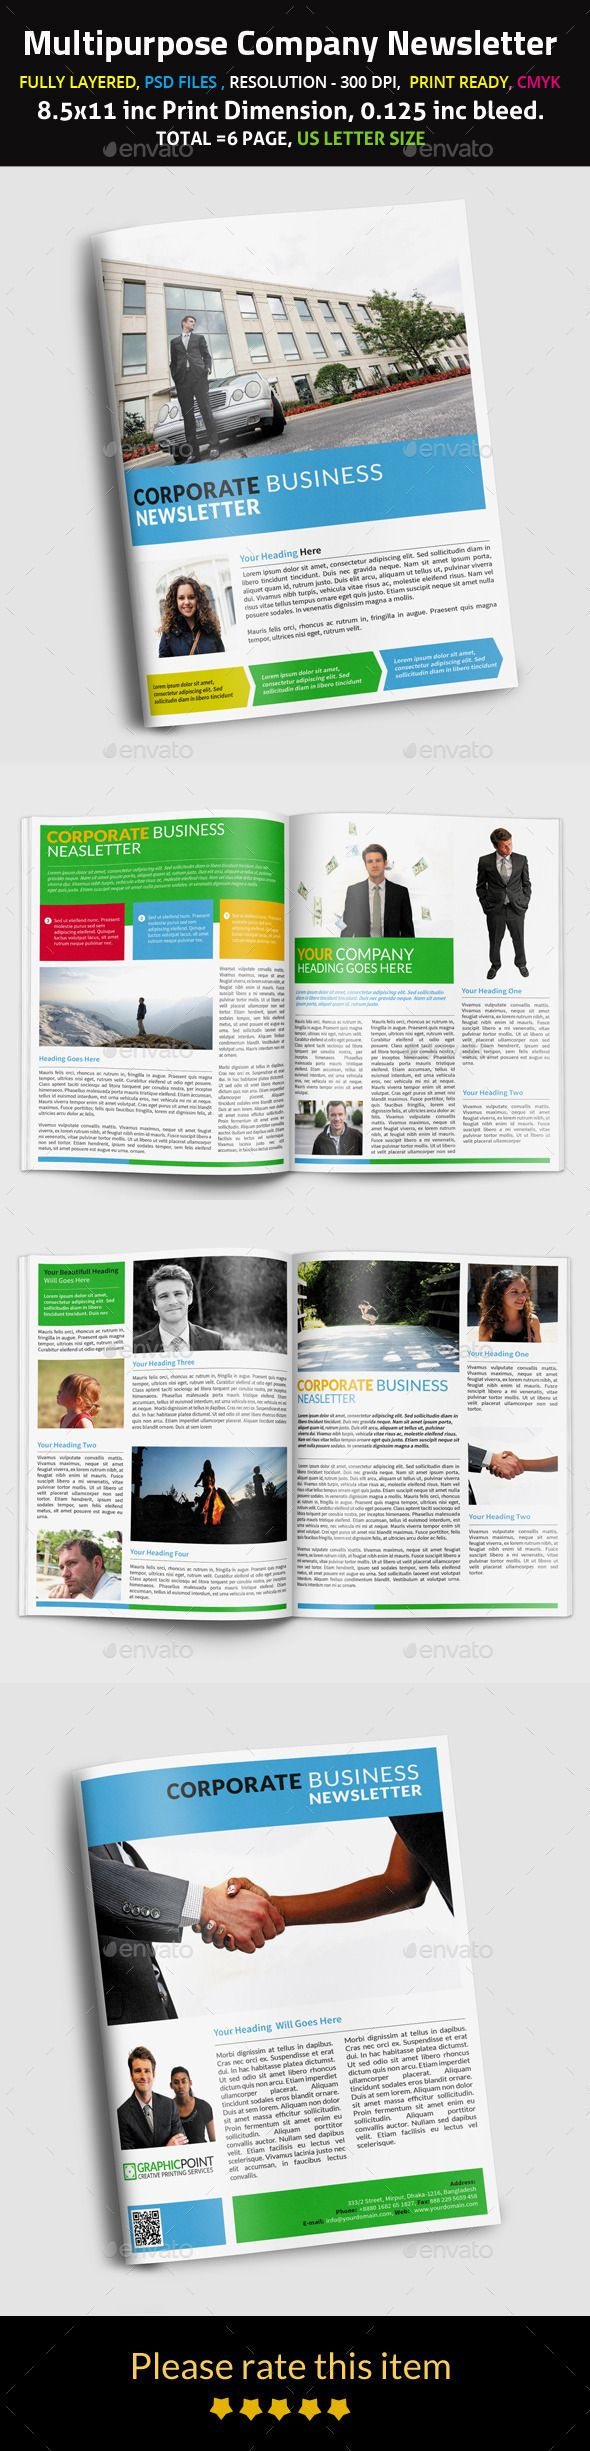 115 best images about Print Newsletter Templates on Pinterest